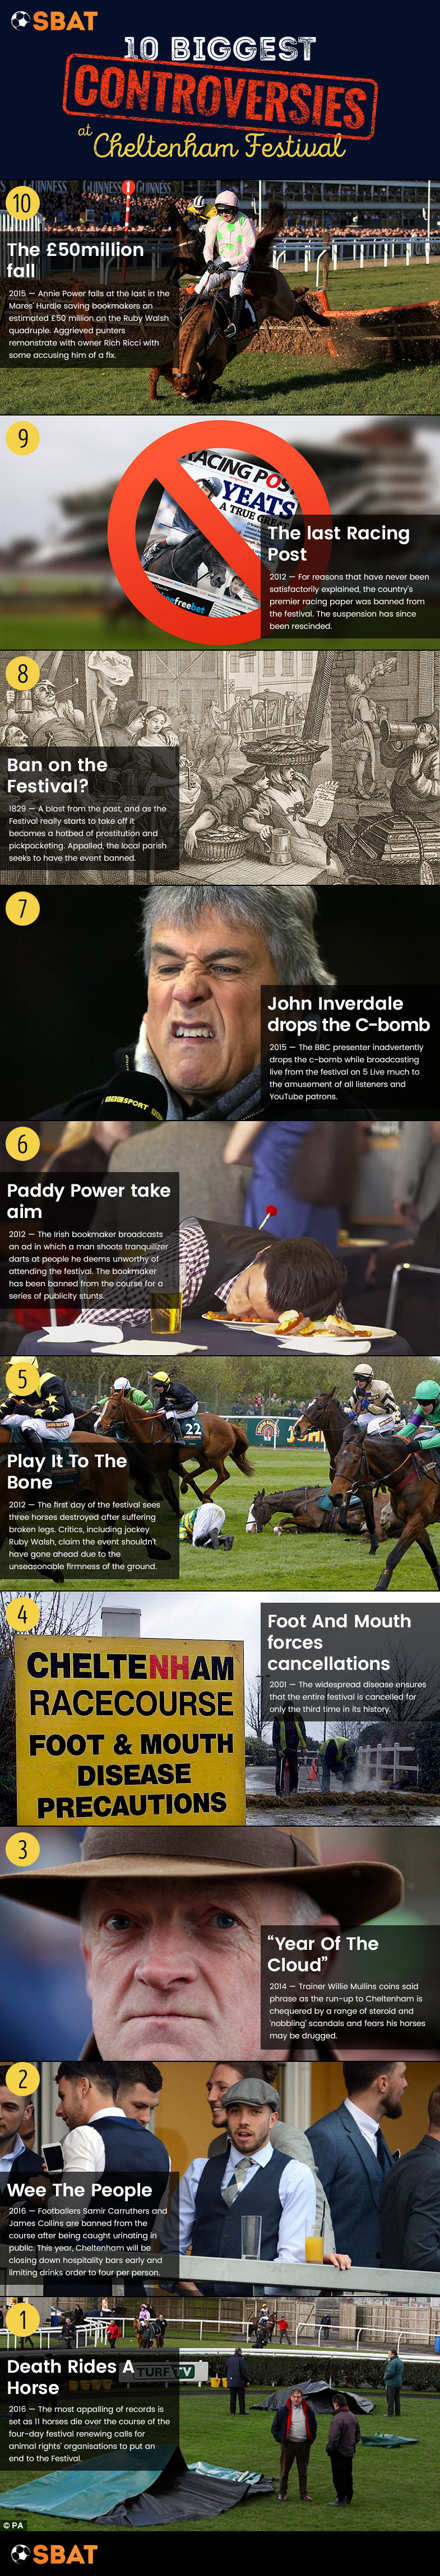 Infographic : Top 10 Most Controversial Moments at Cheltenham